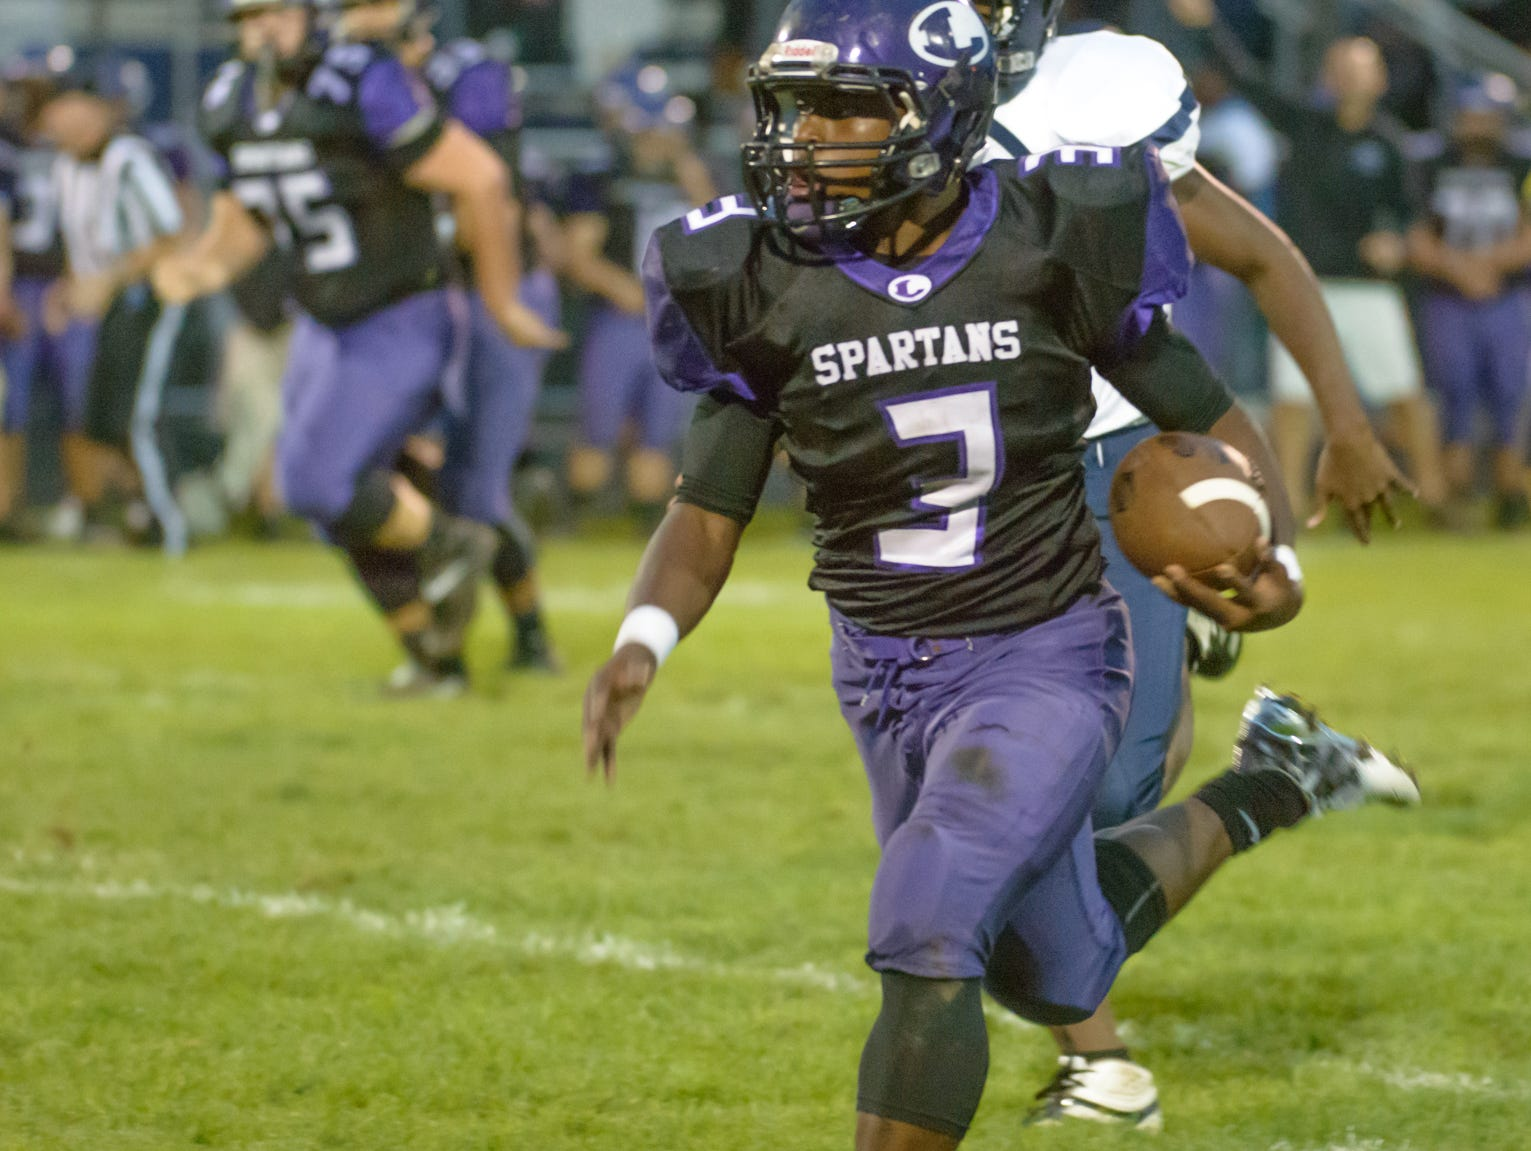 Lakeview running back Jay'Vion Settles runs for a 60-yard score against the Loy Norrix Knights on Friday.